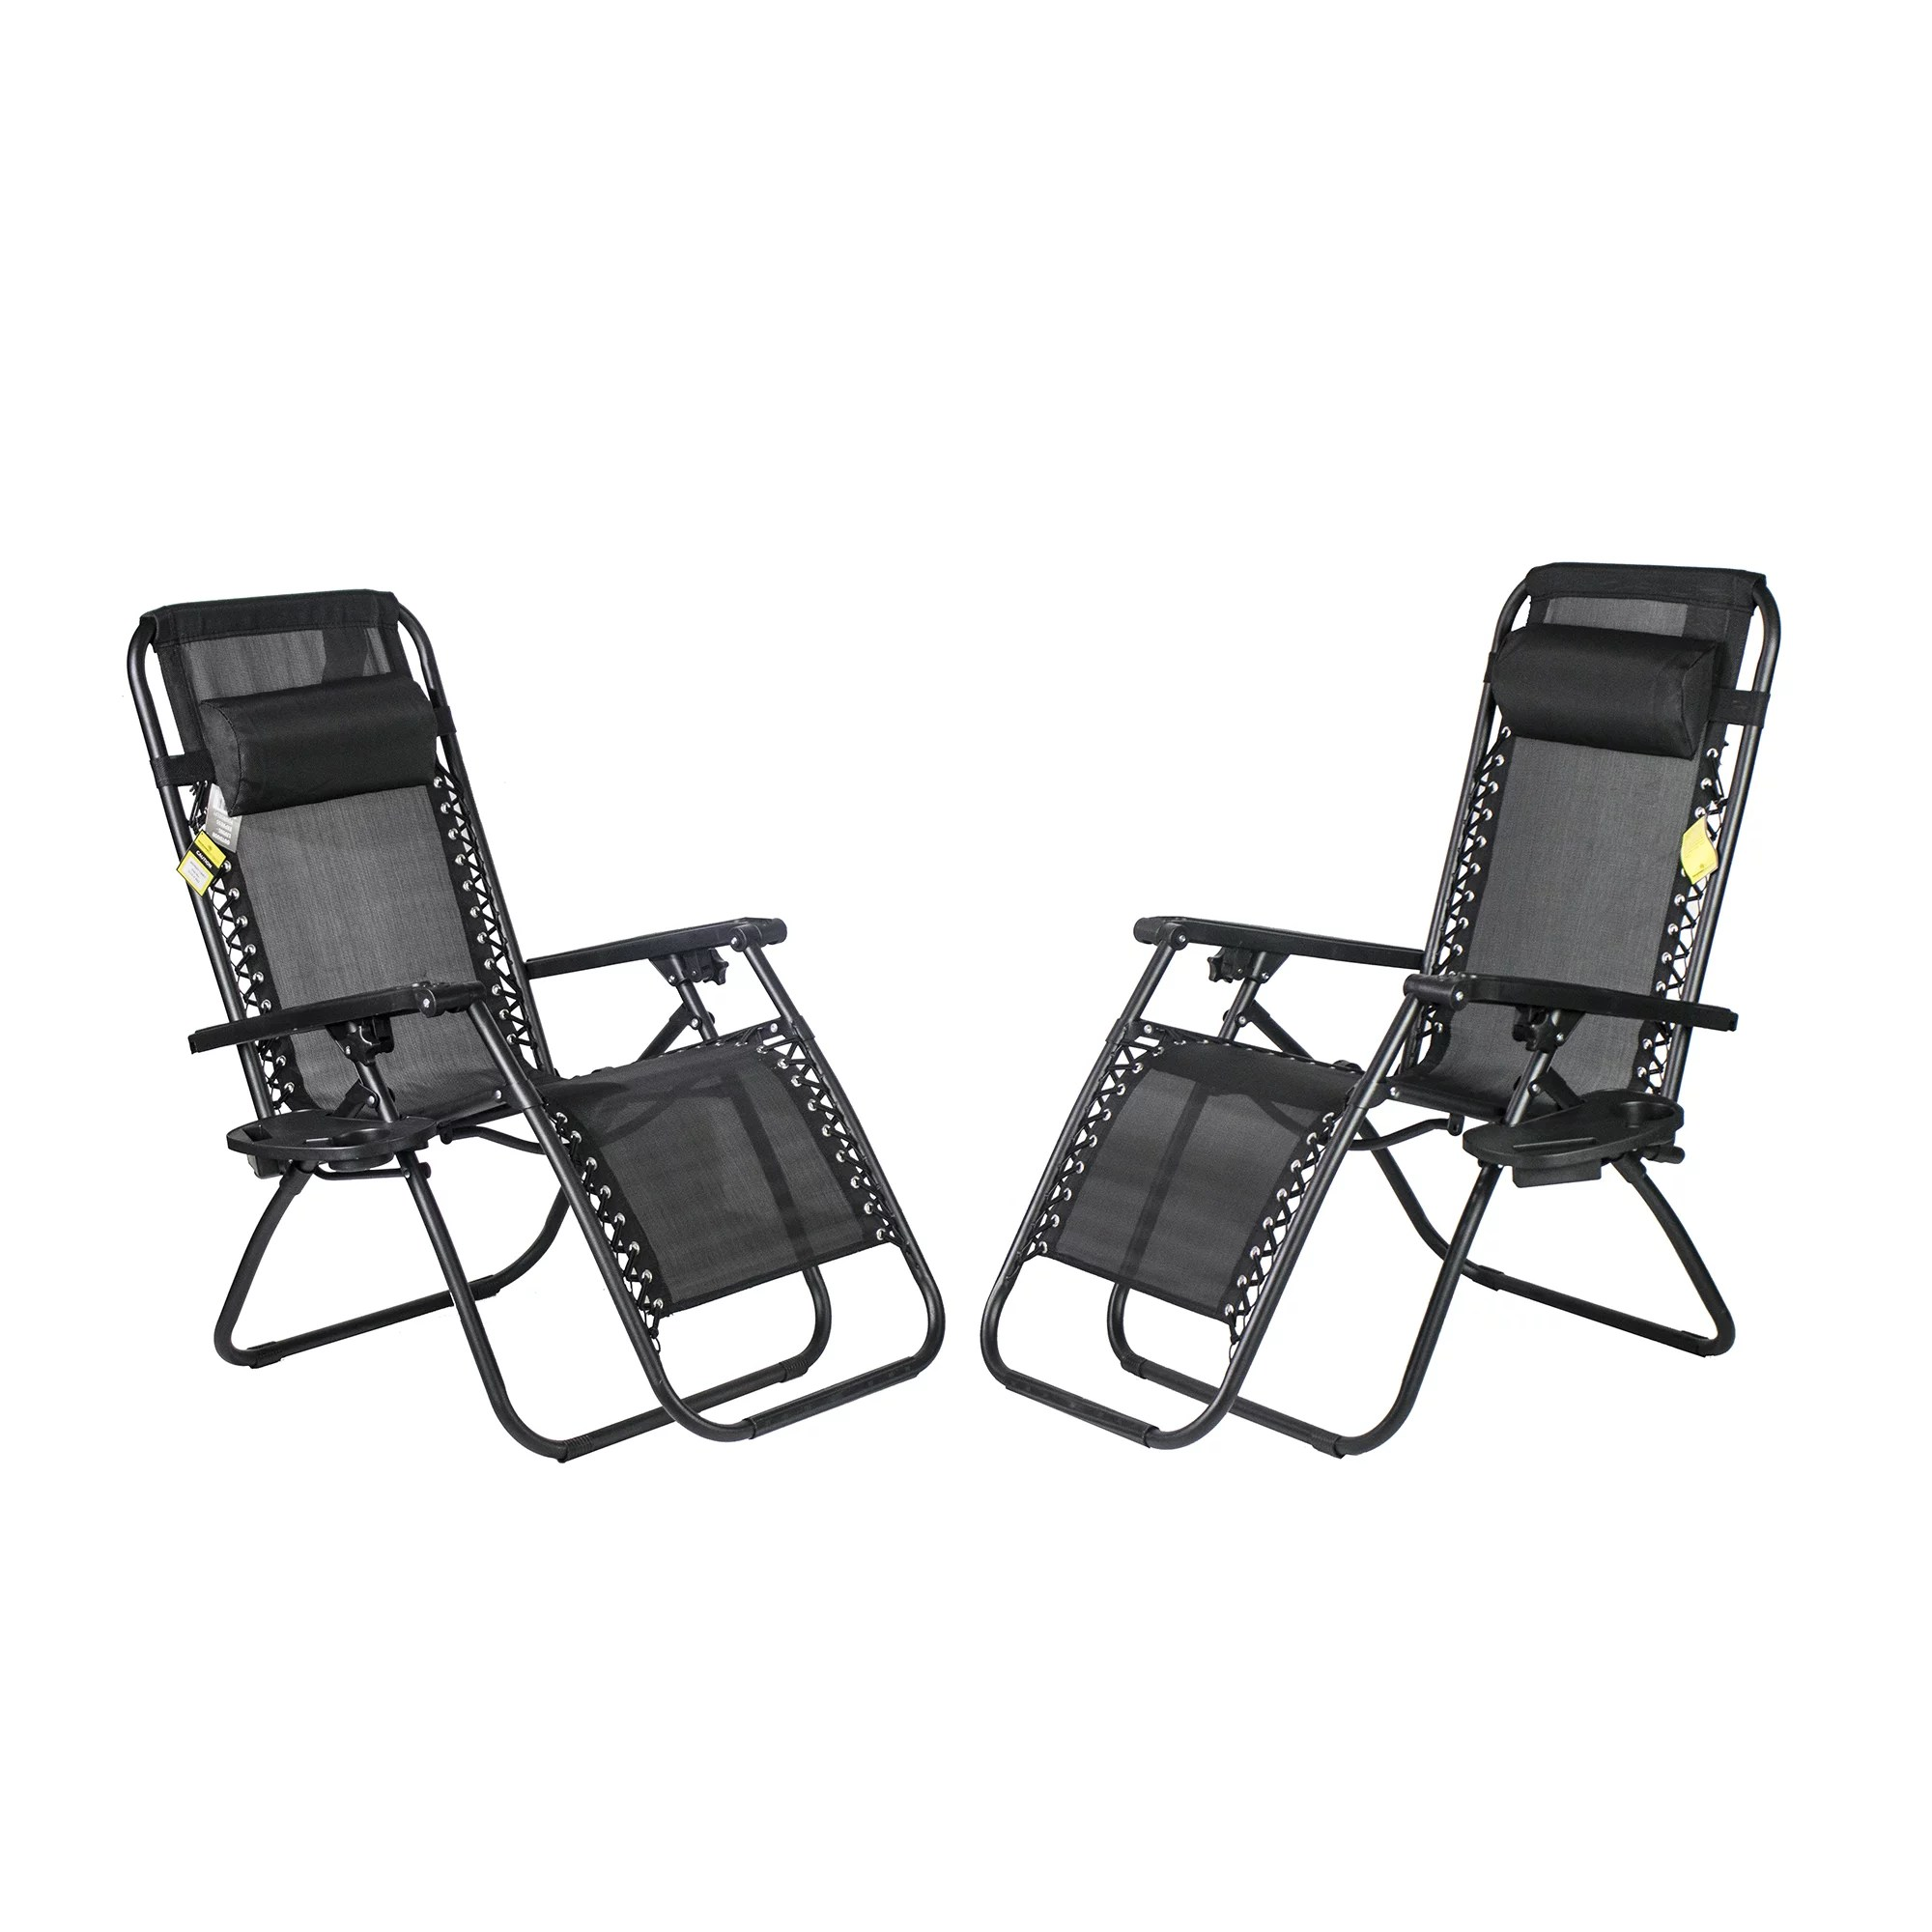 sonoma anti gravity chair review pride electric lift repair zero chairs walmart com product image backyard expressions w pillow and cupholder 2 pack